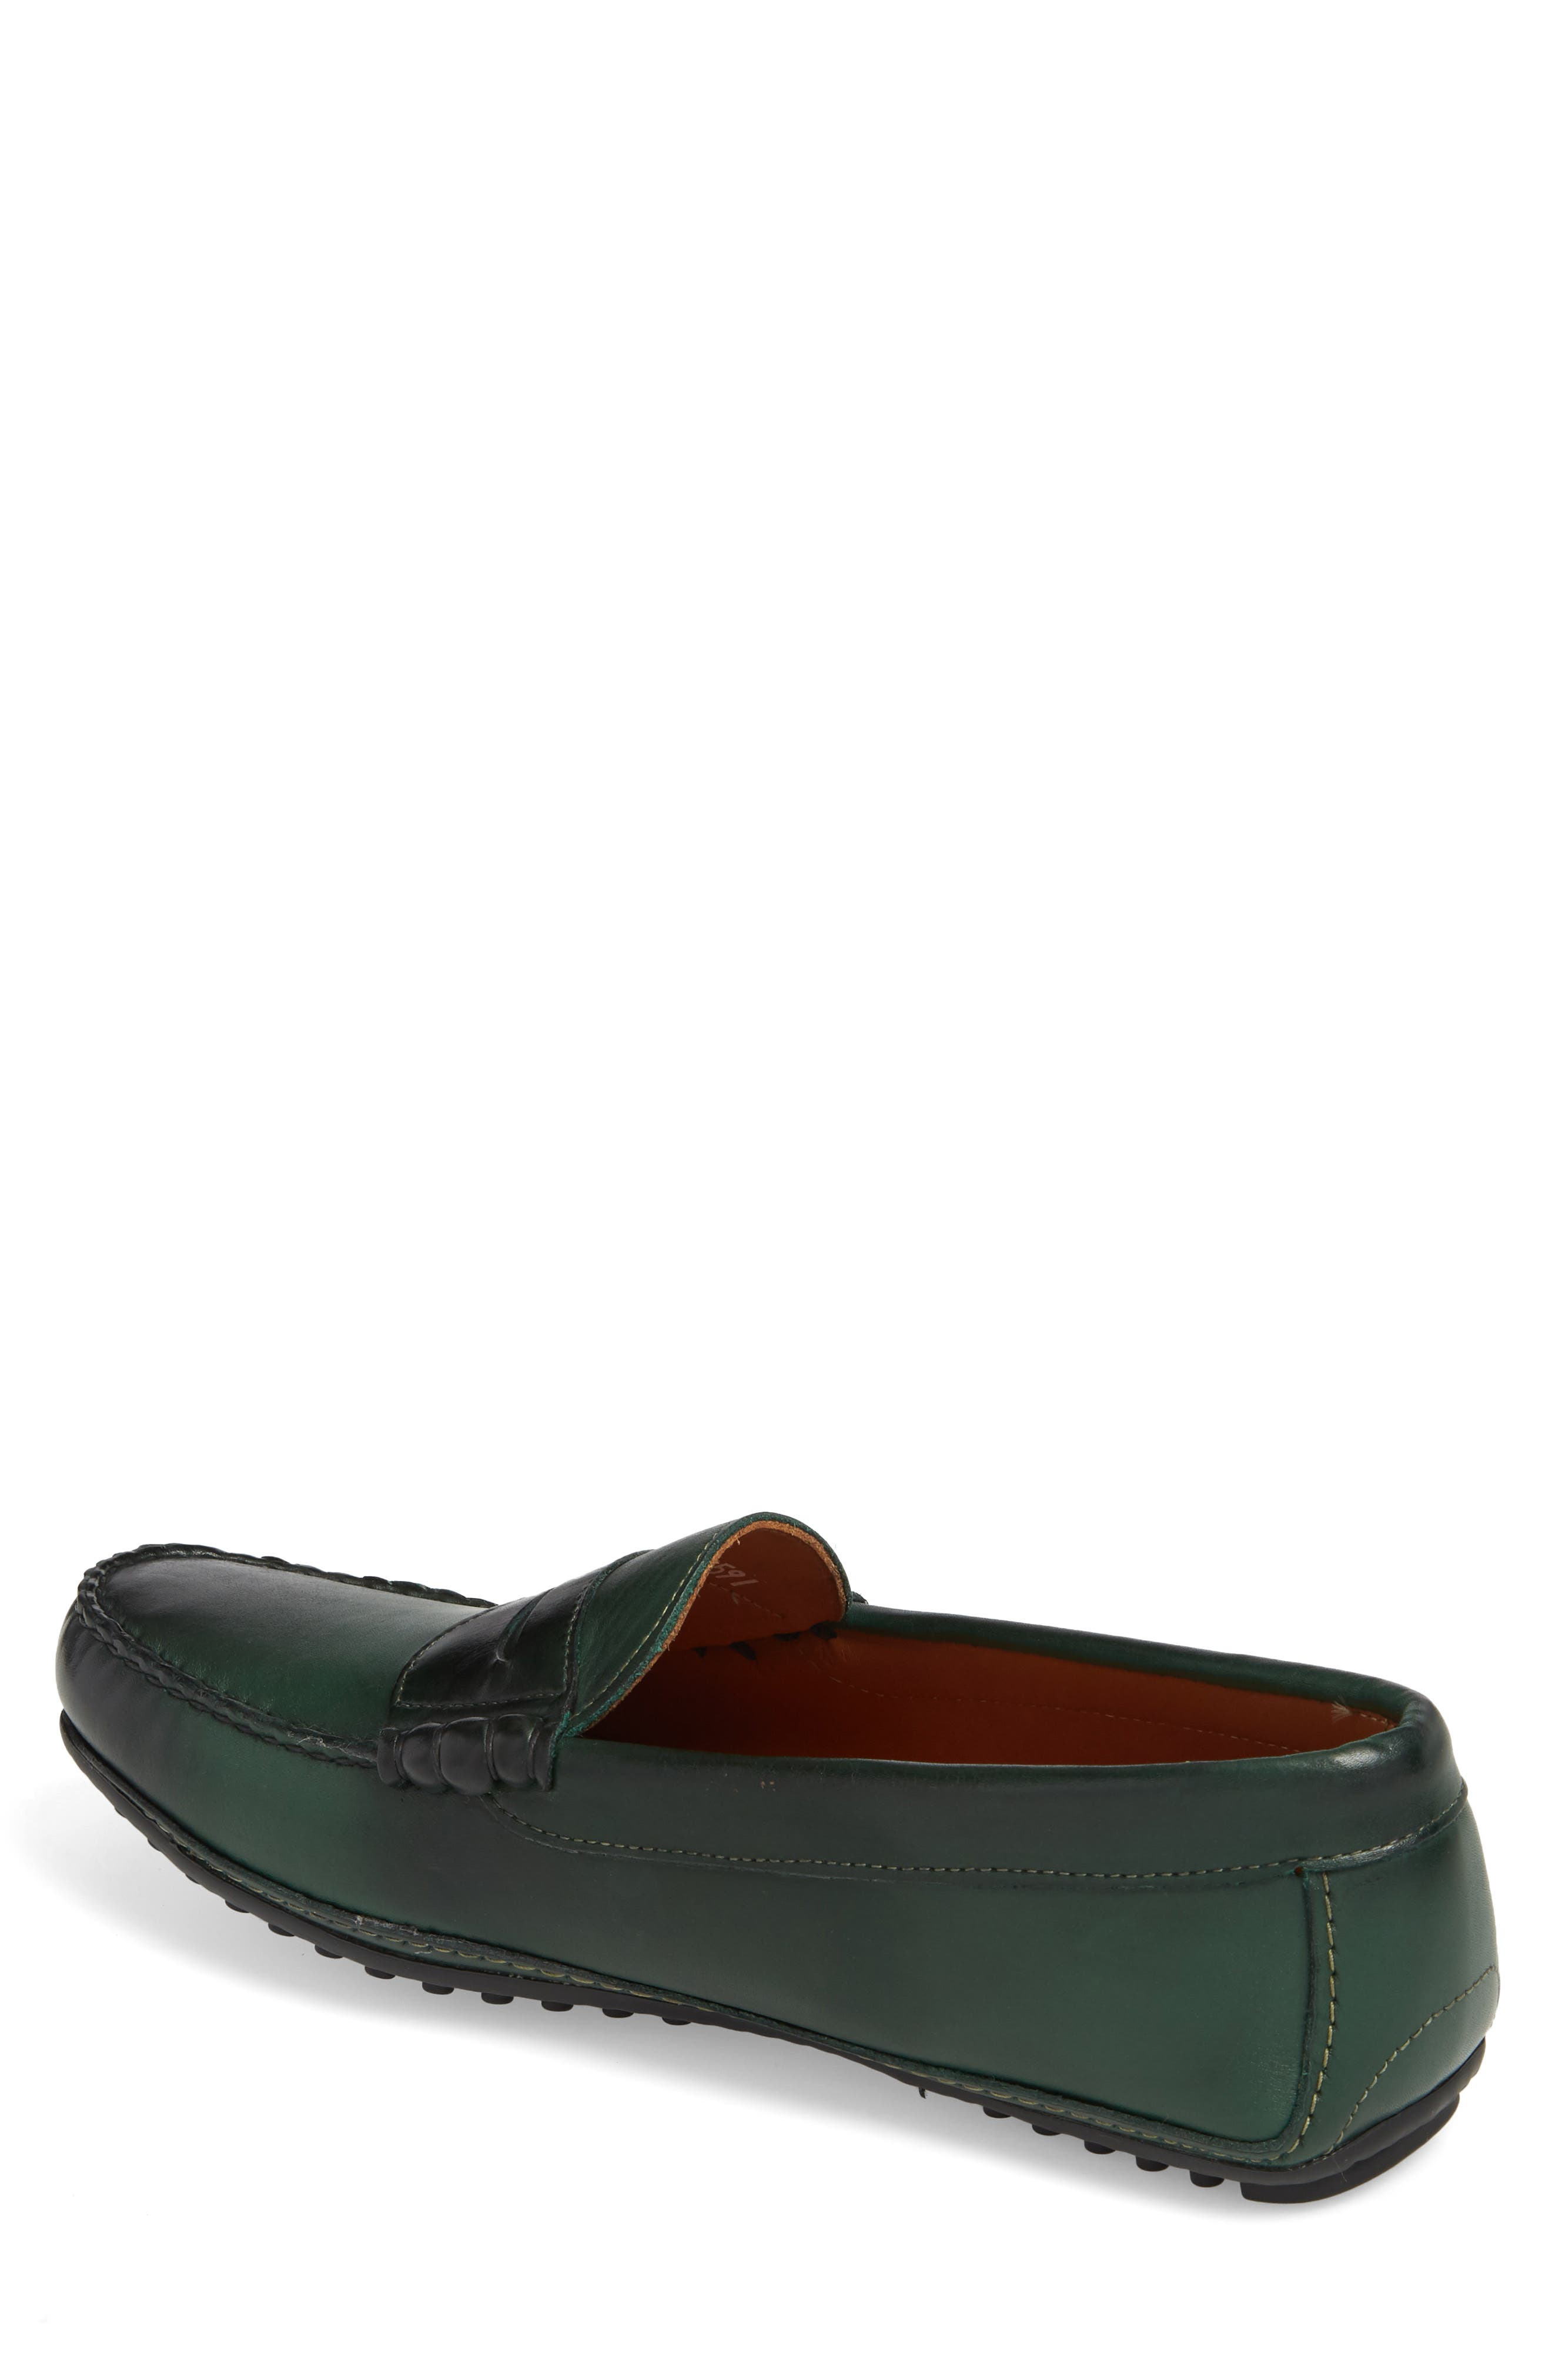 Siesta Key Penny Loafer,                             Alternate thumbnail 2, color,                             GREEN LEATHER